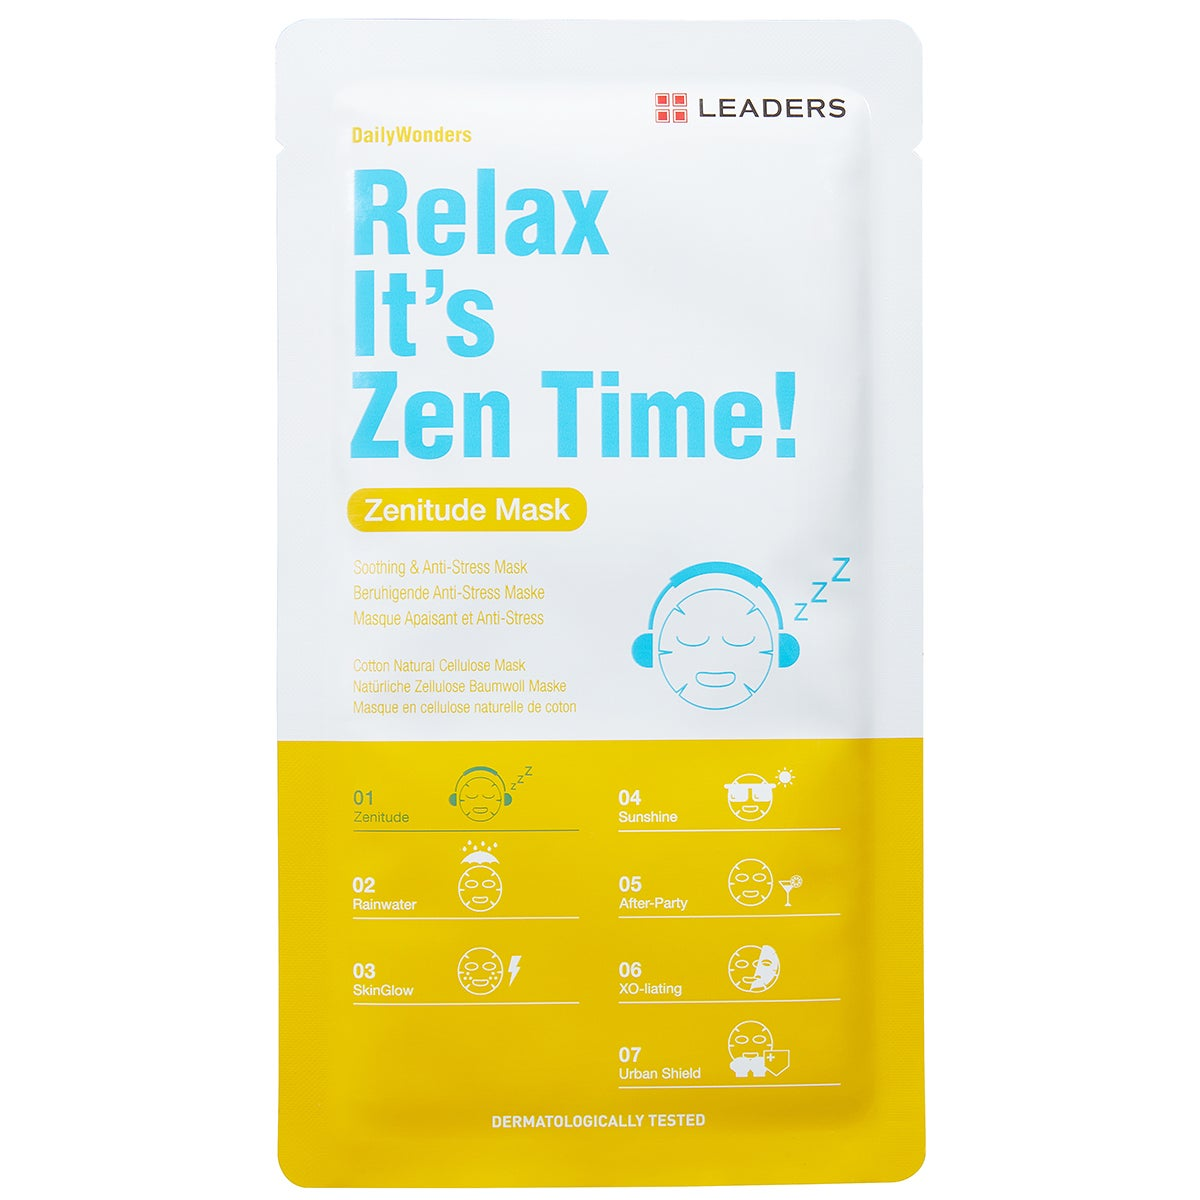 Leaders Relax It's Zen Time! - Zenitude Mask